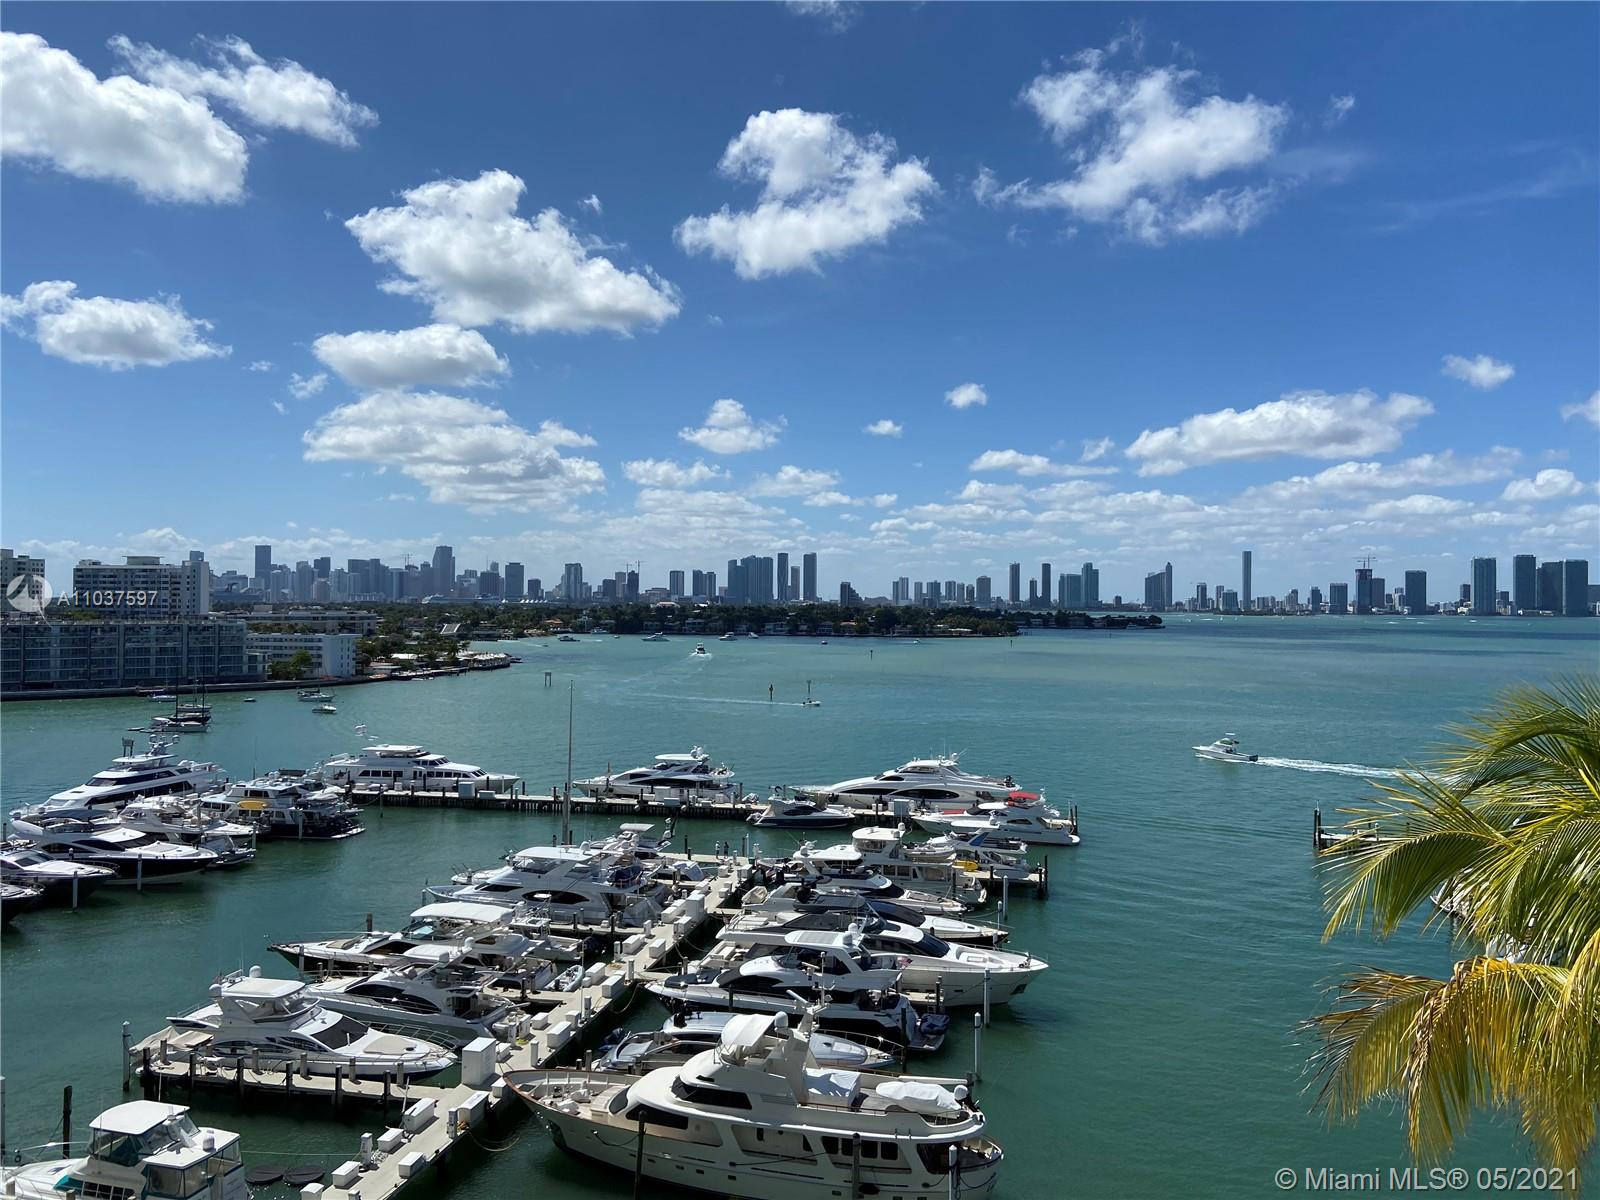 Rare Sunset Harbour bay facing unit in pristine condition. Enjoy spectacular sunsets from your balcony overlooking the Miami skyline & the Venetian Islands. A perfect split level 2 bedroom floor plan with panoramic water views from all rooms. The unit has been upgraded with beautiful hardwood floors, all impact glass doors & windows and offers plenty of closet space as well as an extra storage unit. Amenities include exclusive access to Yacht Club's half size Olympic swimming pool, hot tub, gym, sauna, BBQ, and a large bay facing club room incl. billiard table. Also there's plenty of storage space for your bicycles, kayaks & paddle boards. Sunset Harbour has it all: Marina, park, restaurants & boutiques, a co-working space, several gyms & supermarkets.